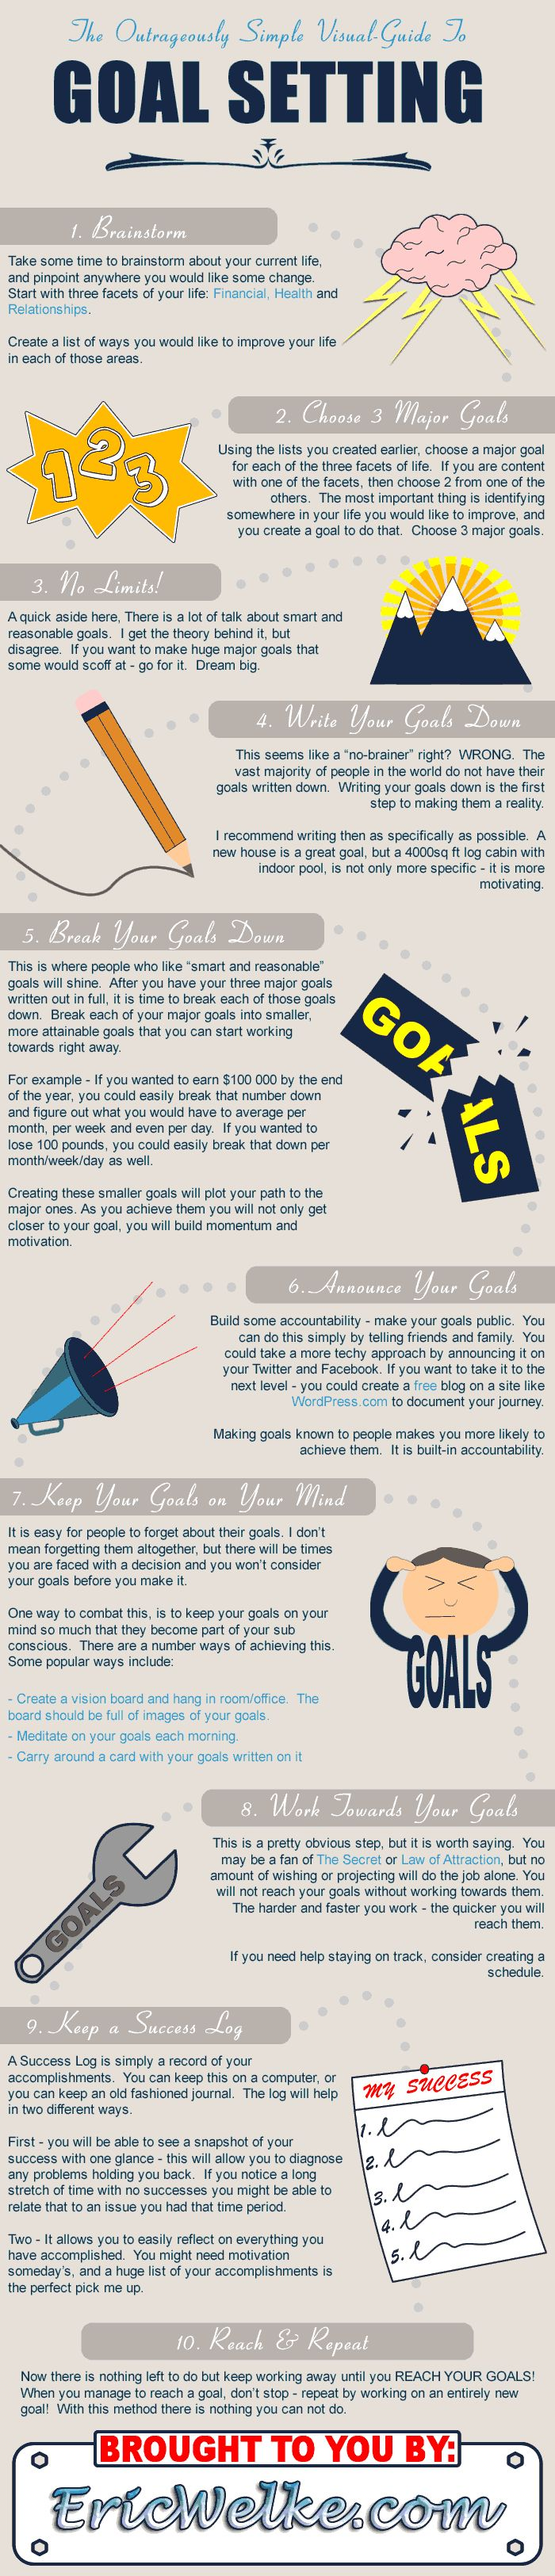 This is an infographic that provides 10 steps to effective goal setting. Setting goals is imperative not only in business, but also in our personal life, too.